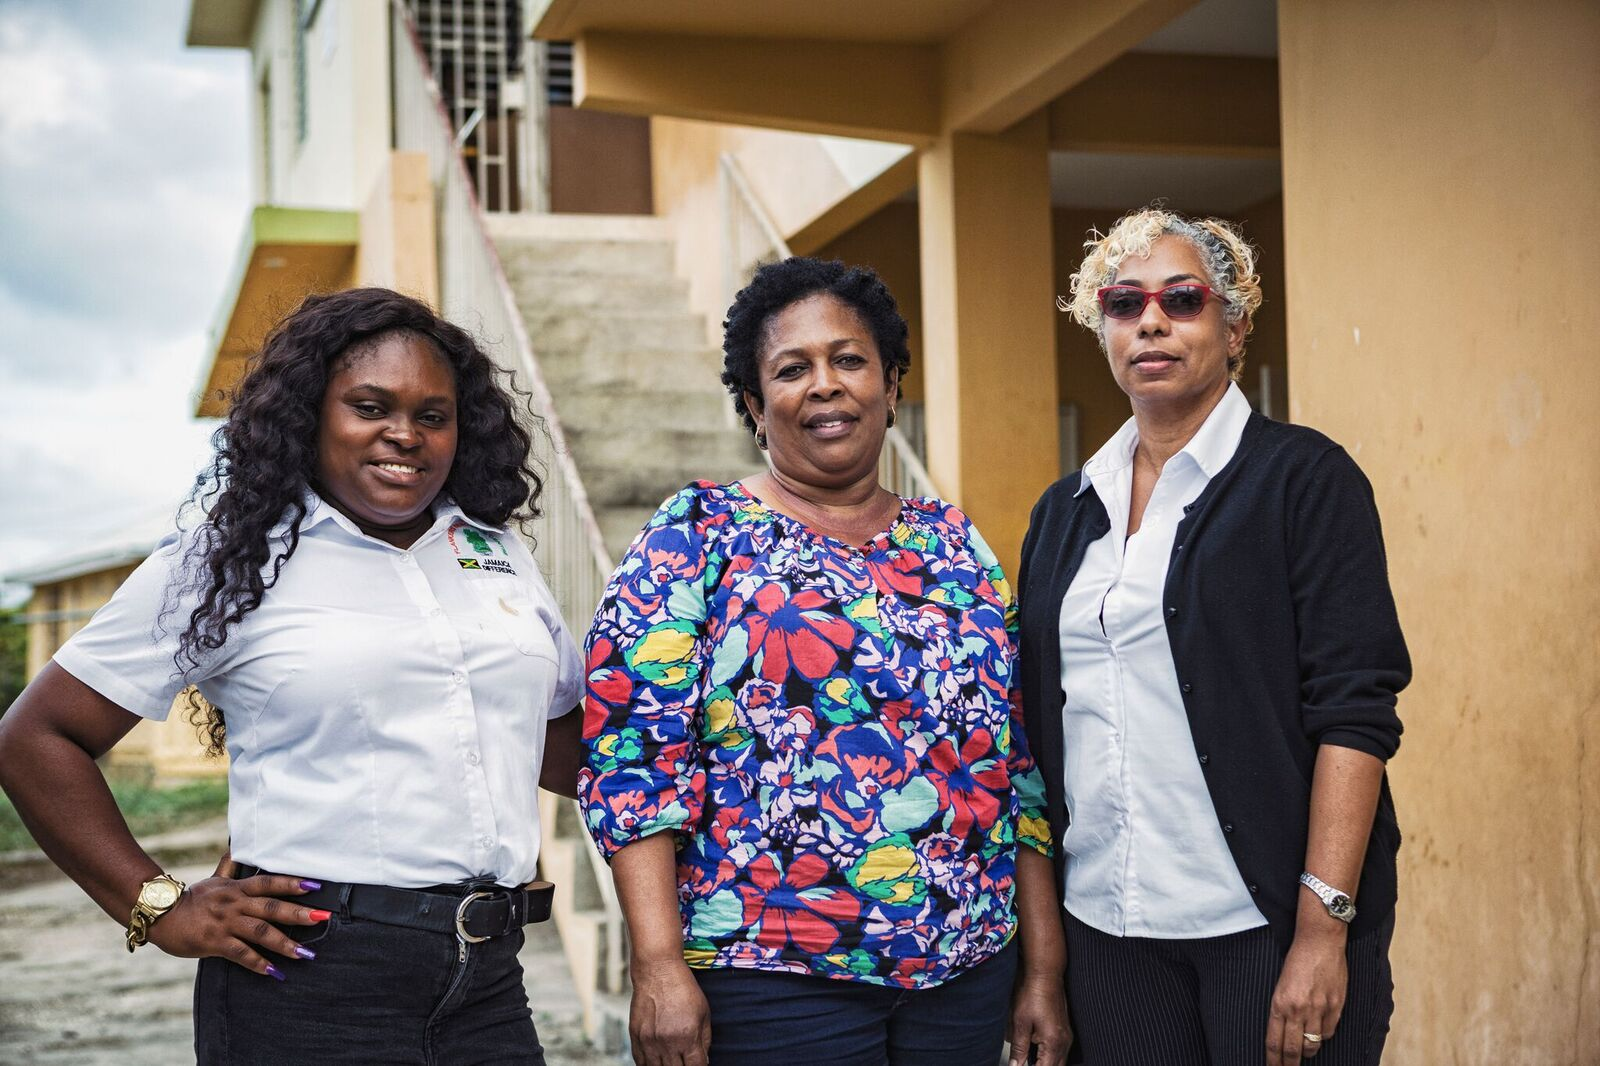 A View Into The Sandals Foundation's Flanker Resource Center